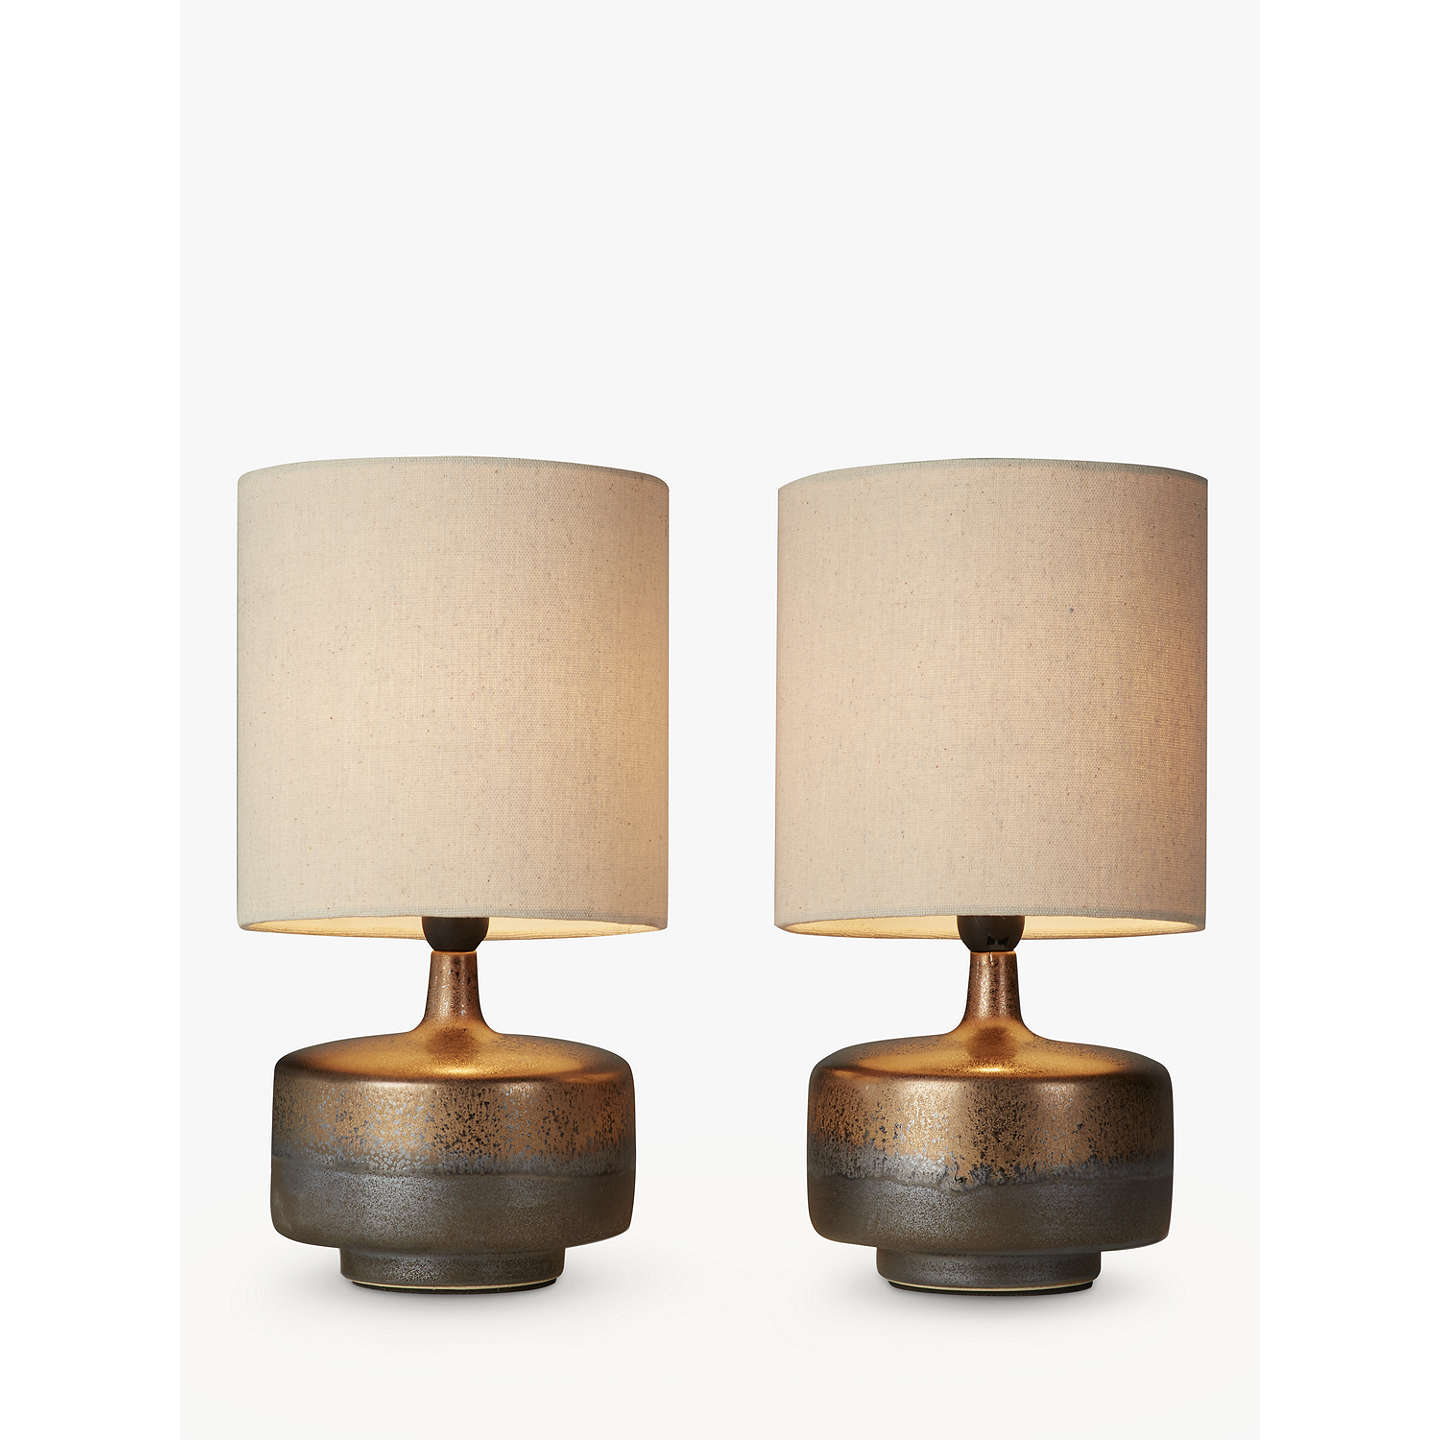 John lewis delaney metallic glaze ceramic table lamp set of 2 at buyjohn lewis delaney metallic glaze ceramic table lamp set of 2 online at johnlewis aloadofball Gallery